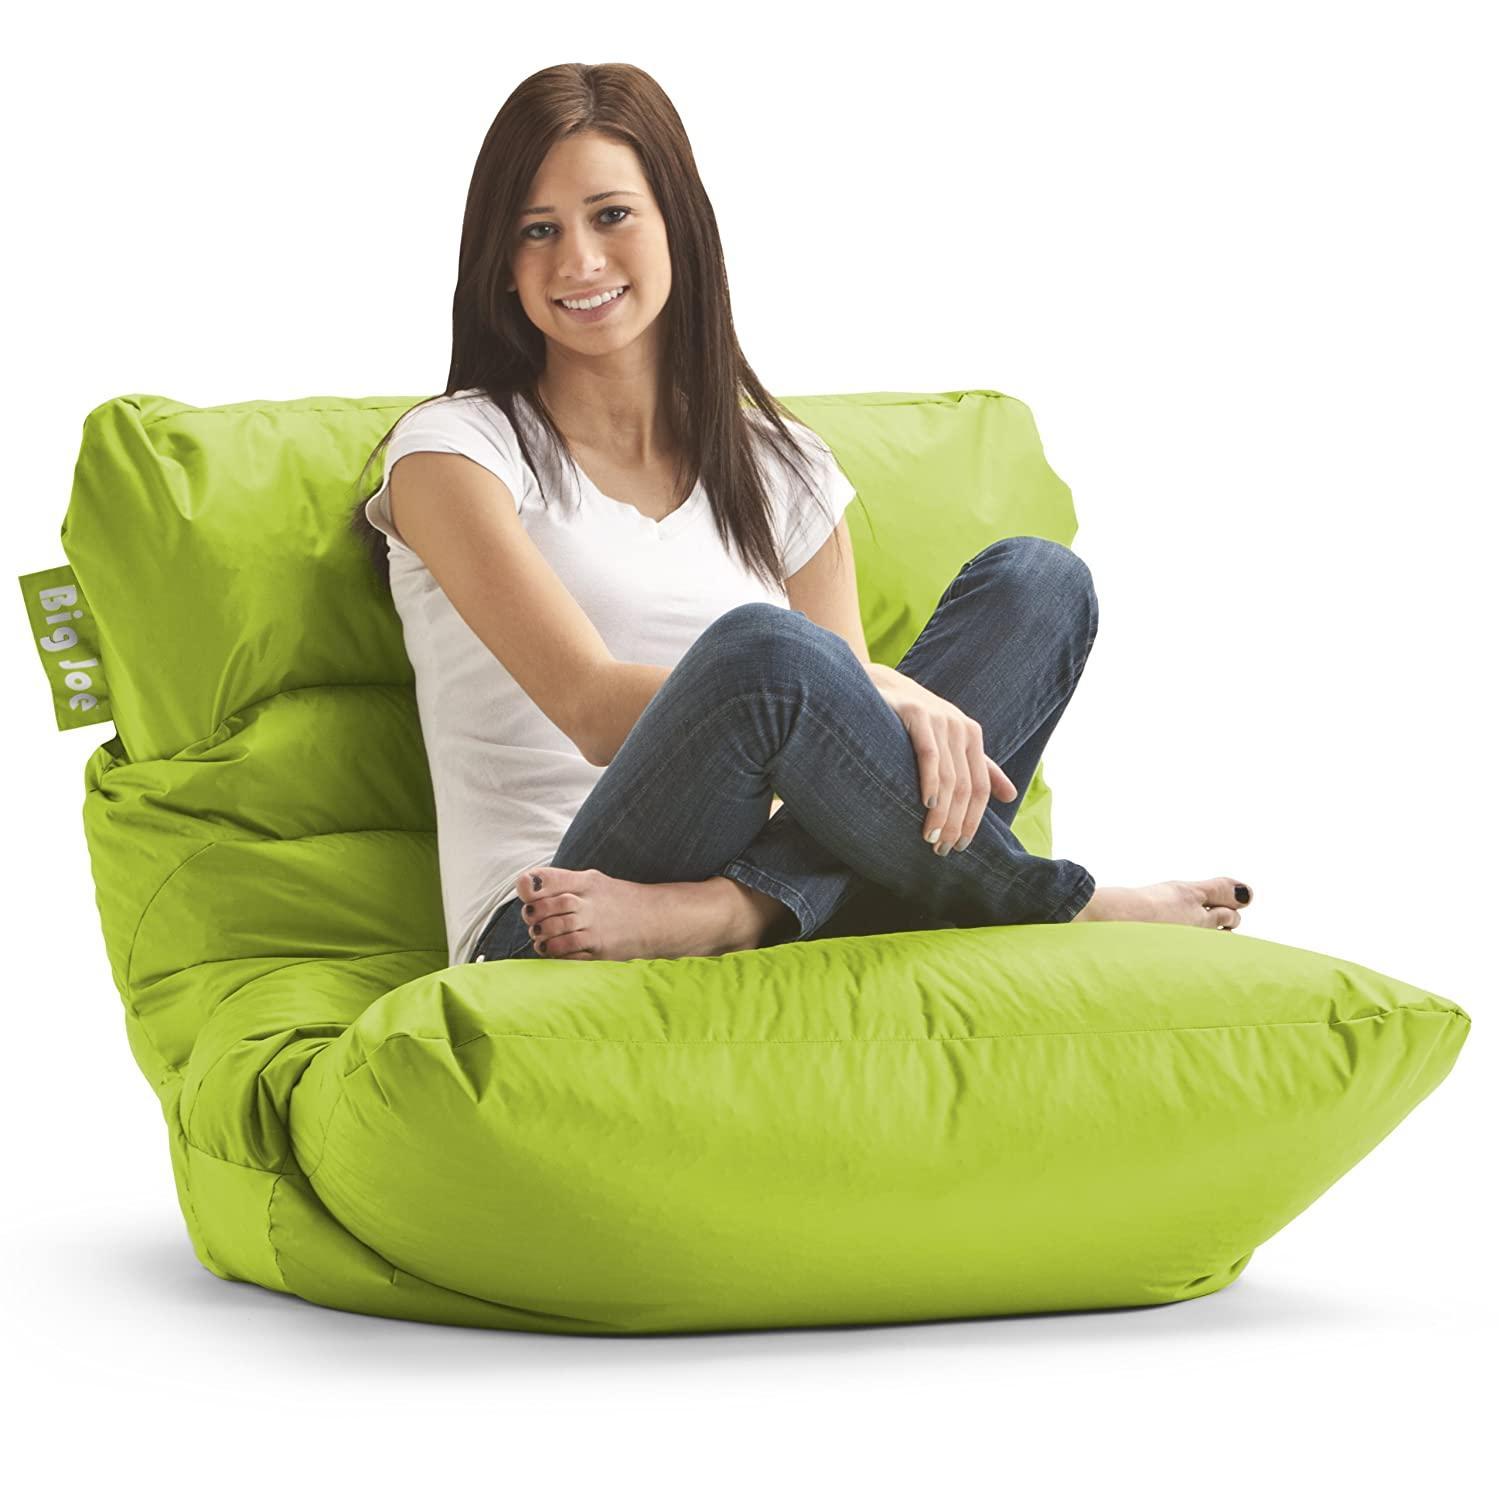 Cool bean bag chairs for adults 4 pictures to pin on pinterest